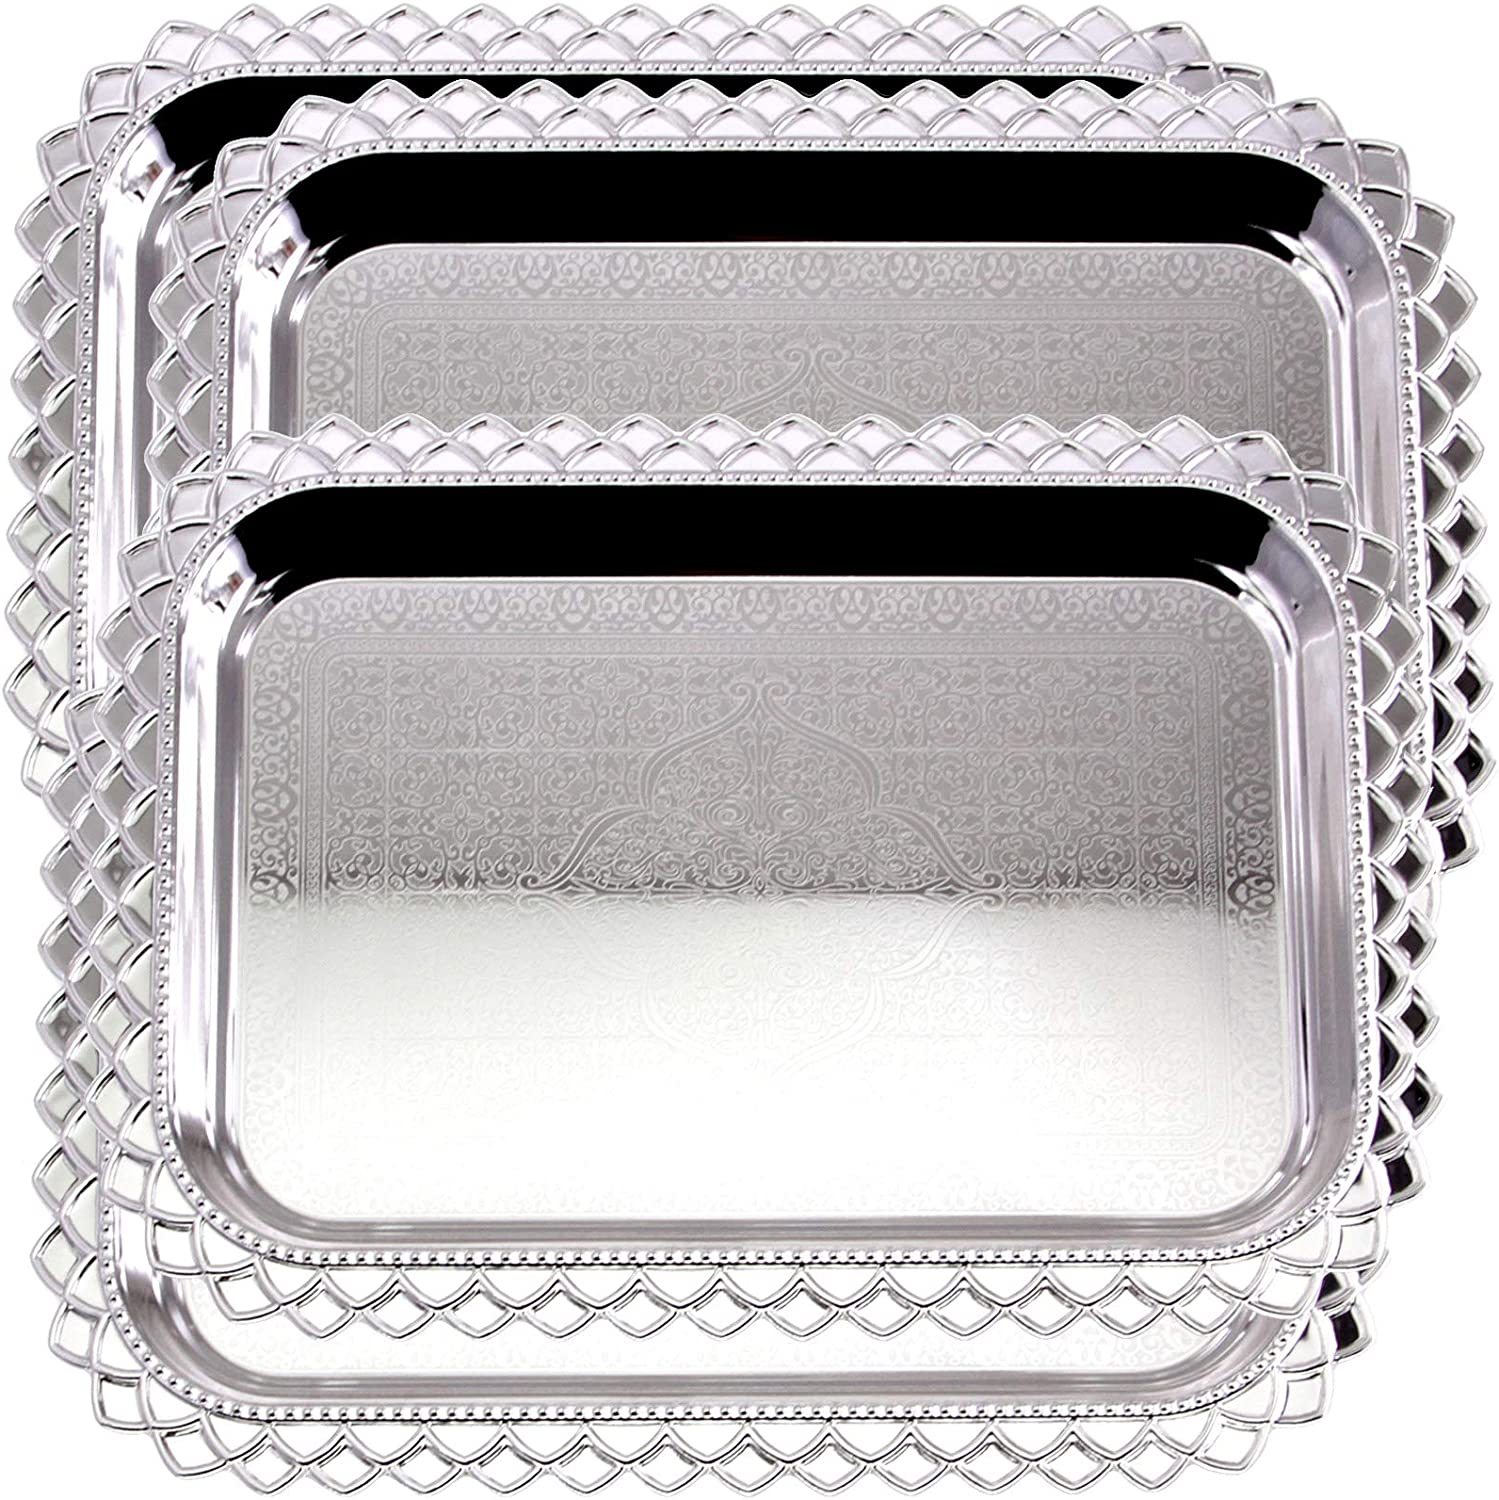 Maro Megastore (Pack of 4) 16.5 Inch x 11.8 Inch Oblong Chrome Plated Mirror Serving Tray Stylish Design Floral Engraved Edge Decorative Party Birthday Wedding Dessert Buffet Wine Platter Plate CC-901